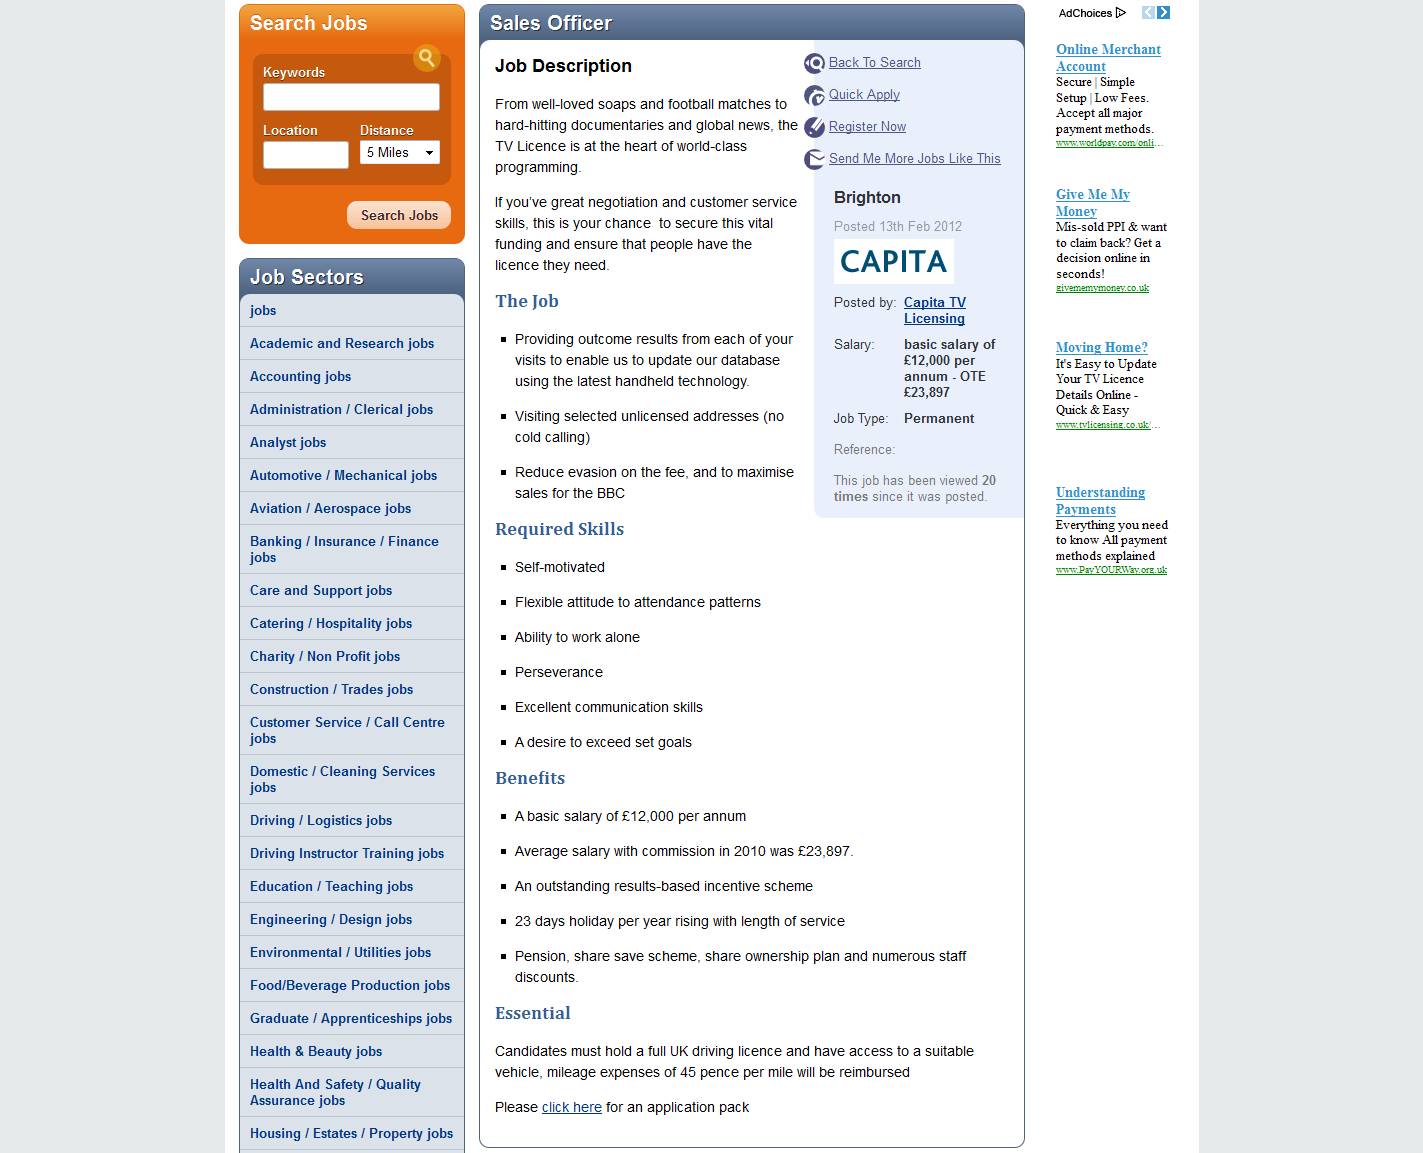 Sales+Officer+posted+by+Capita+TV+Licensing.png